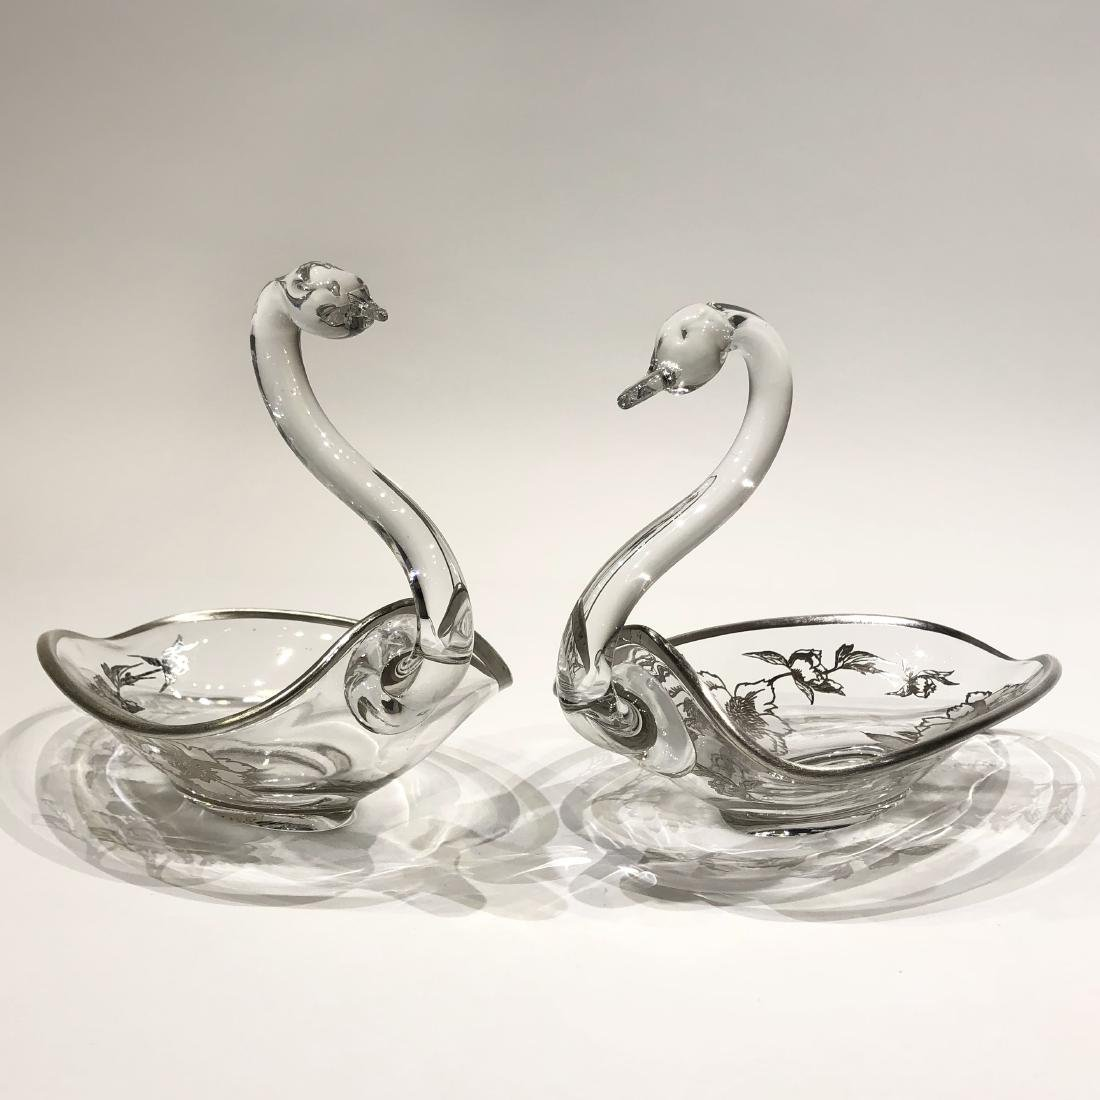 Japanese Silver Overlay Glass Plate & Pair Swan Bowls - 2